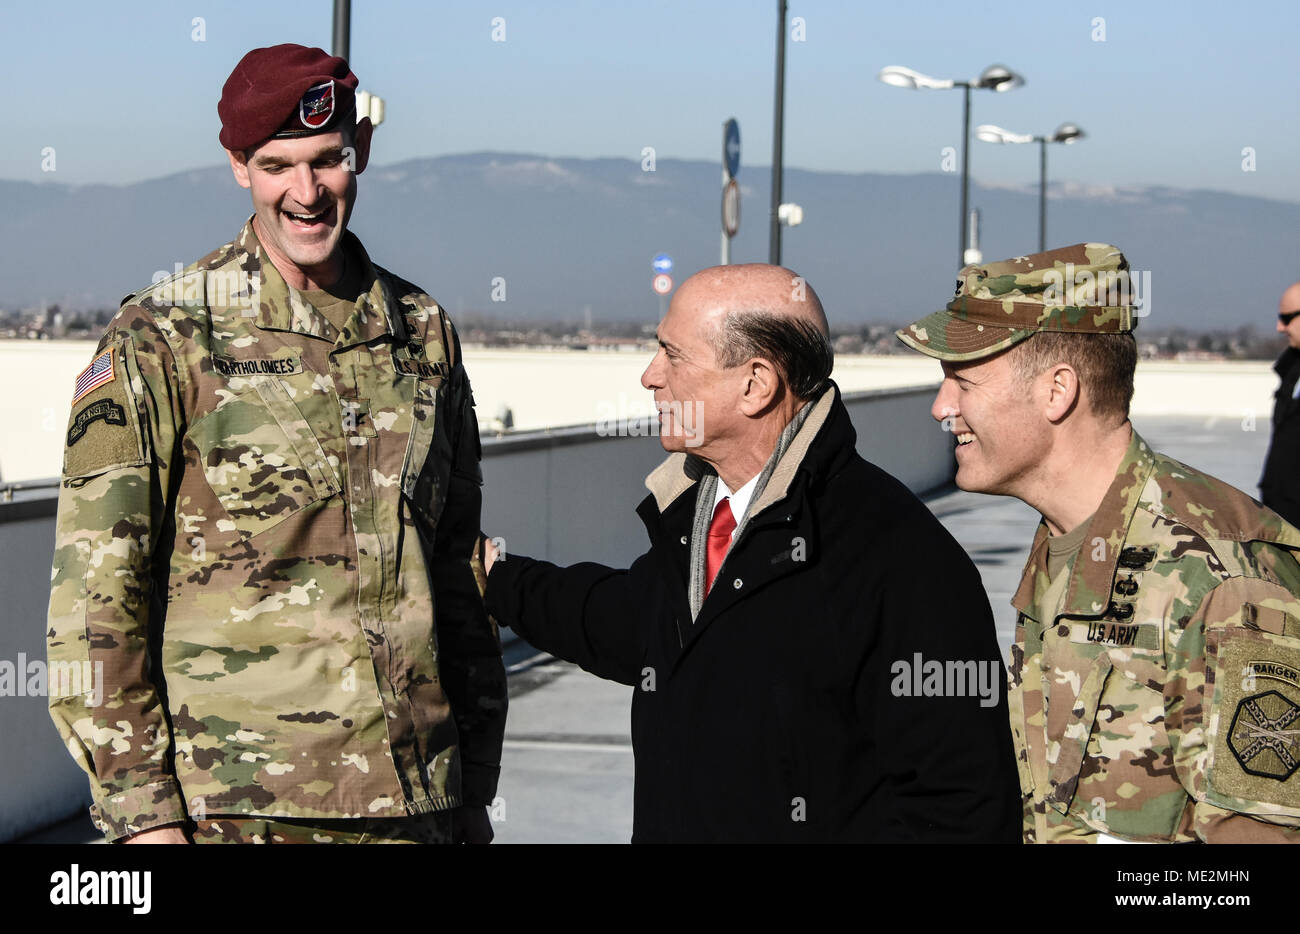 US Ambassador Lewis Eisenberg meets with Colonel Bartholomees, 173rd Airborne Brigade commander, Colonel Berdy, USAG-Italy commander at the Del Din military base in Vicenza, Italy. Stock Photo